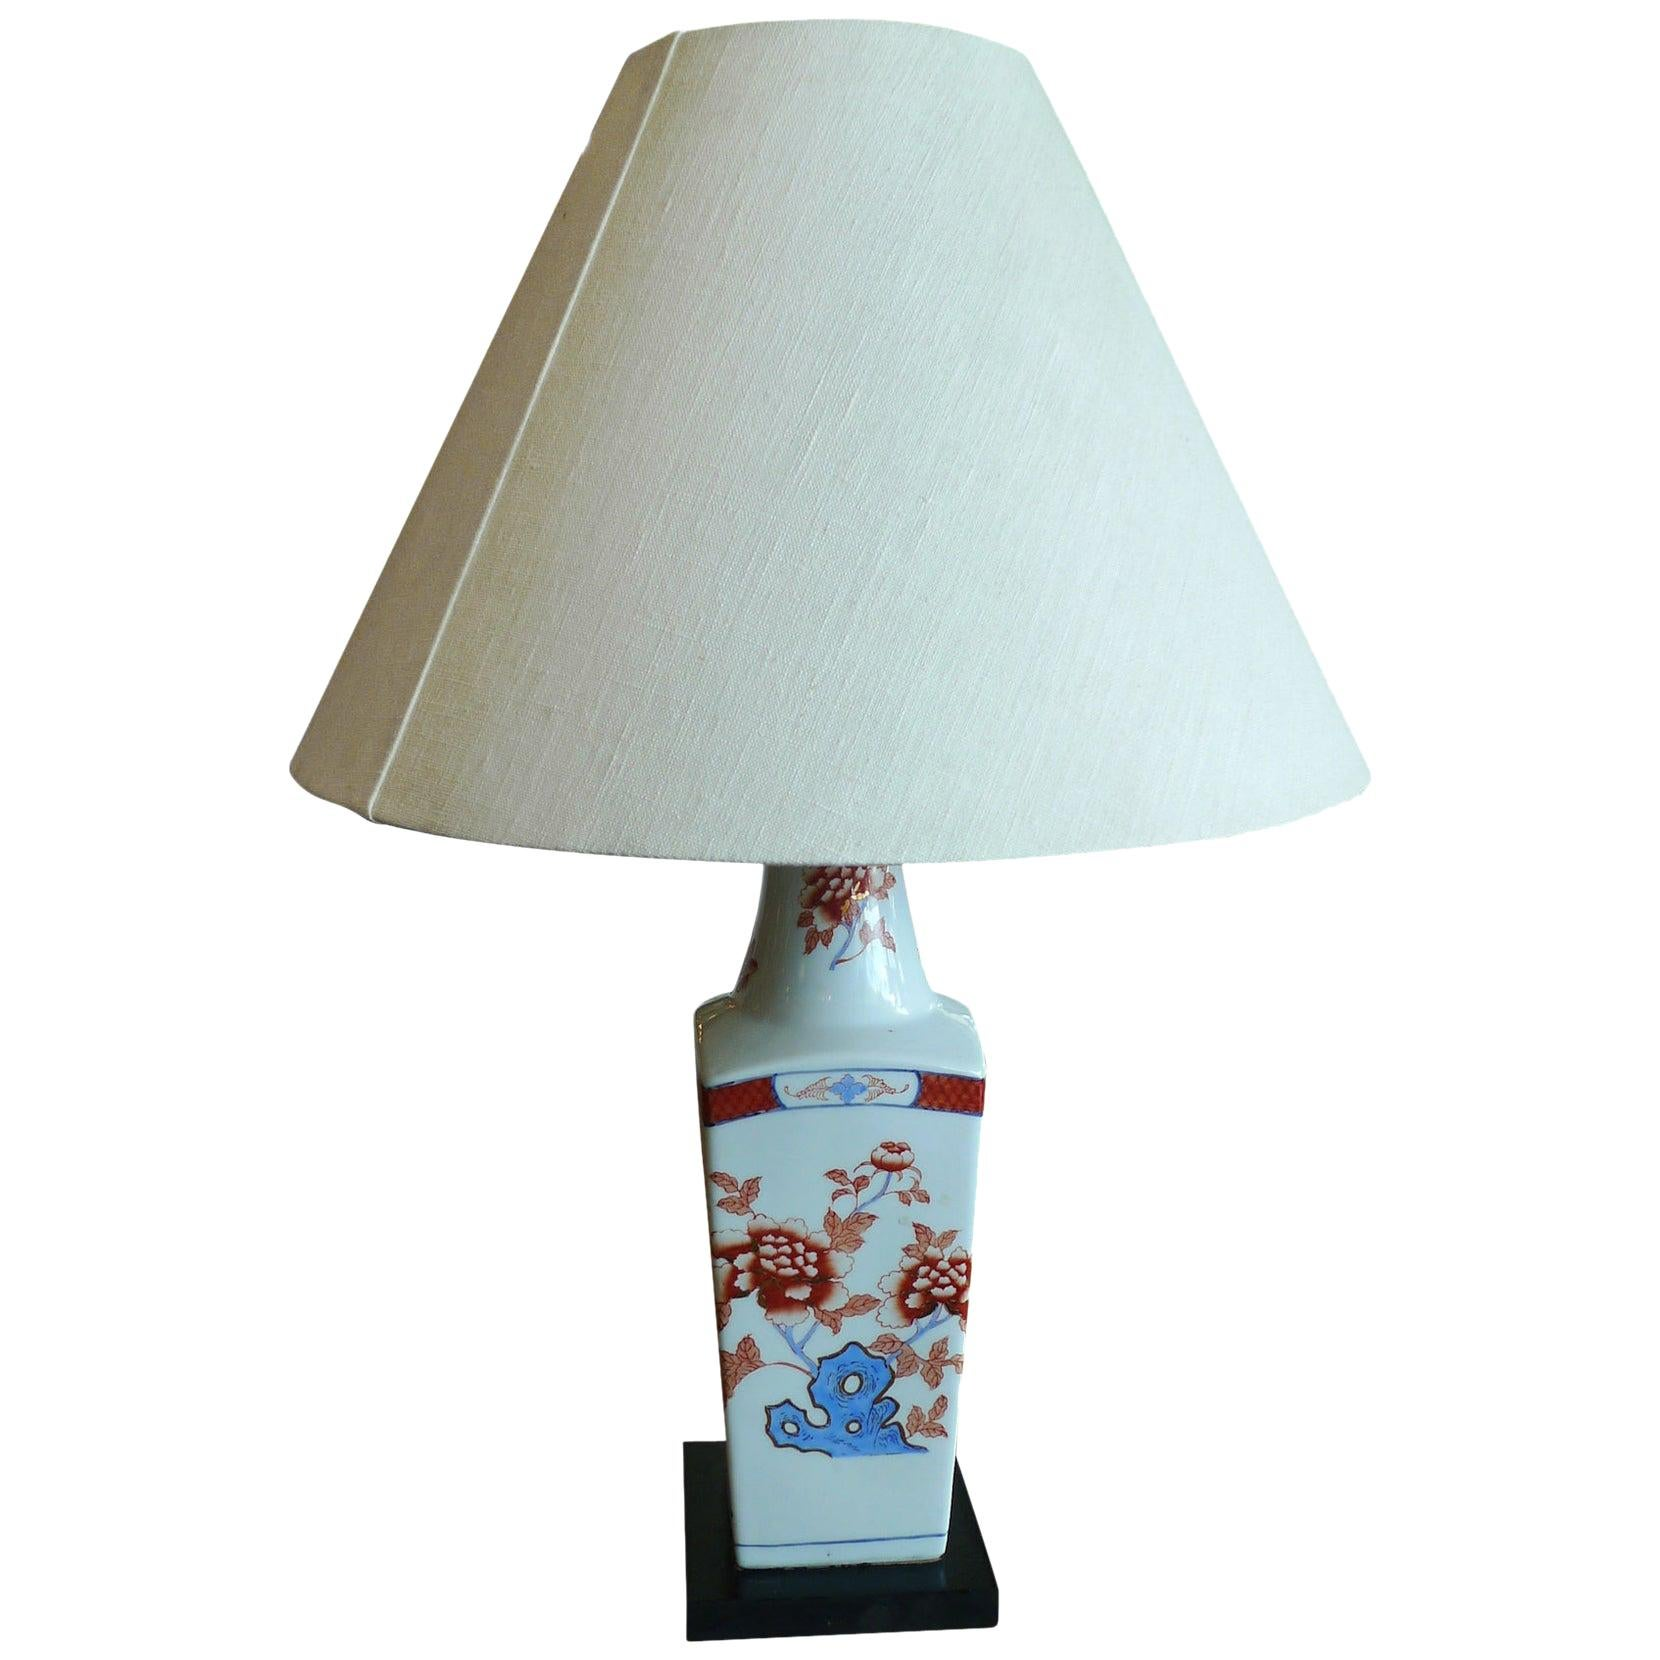 American 20th Century Porcelain Painted Vase Adapted into a Table Lamp